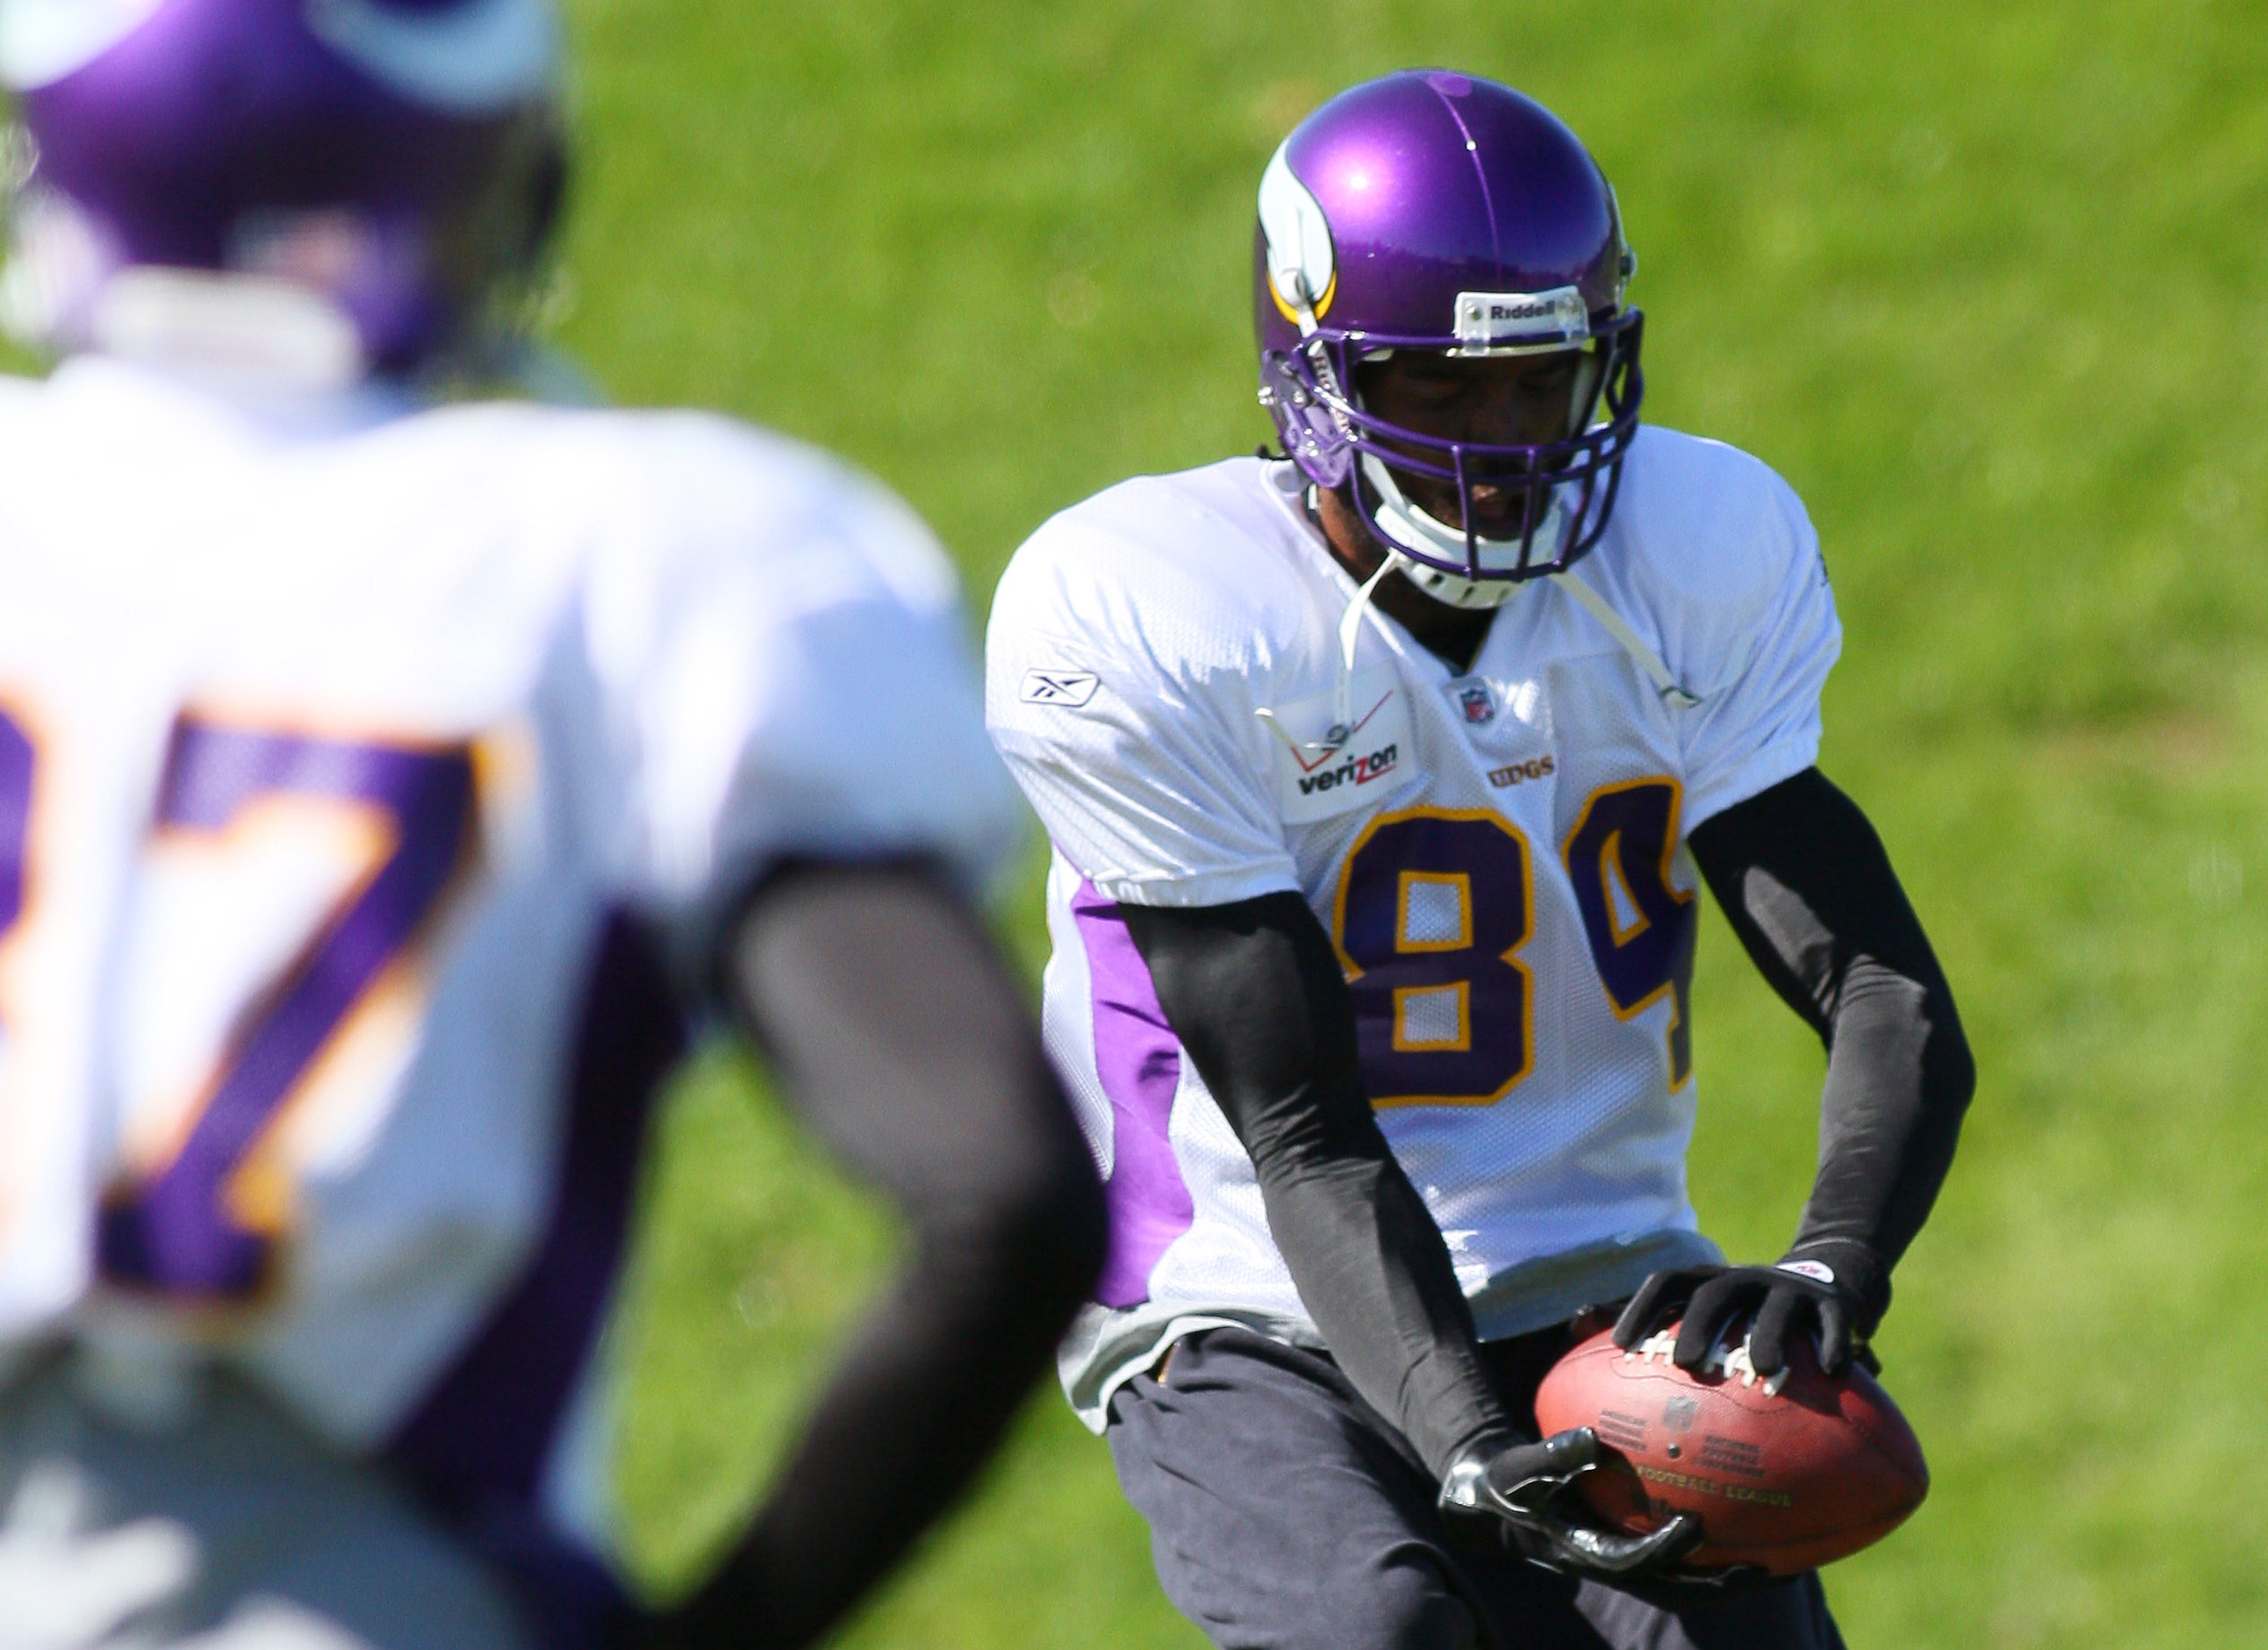 EDEN PRAIRIE, MN - OCTOBER 7:  Wide receiver Randy Moss #84 of the Minnesota Vikings catches the ball during his first practice after re-joining the Vikings at Winter Park on October 7, 2010 in Eden Prairie, Minnesota.  (Photo by Adam Bettcher/Getty Image